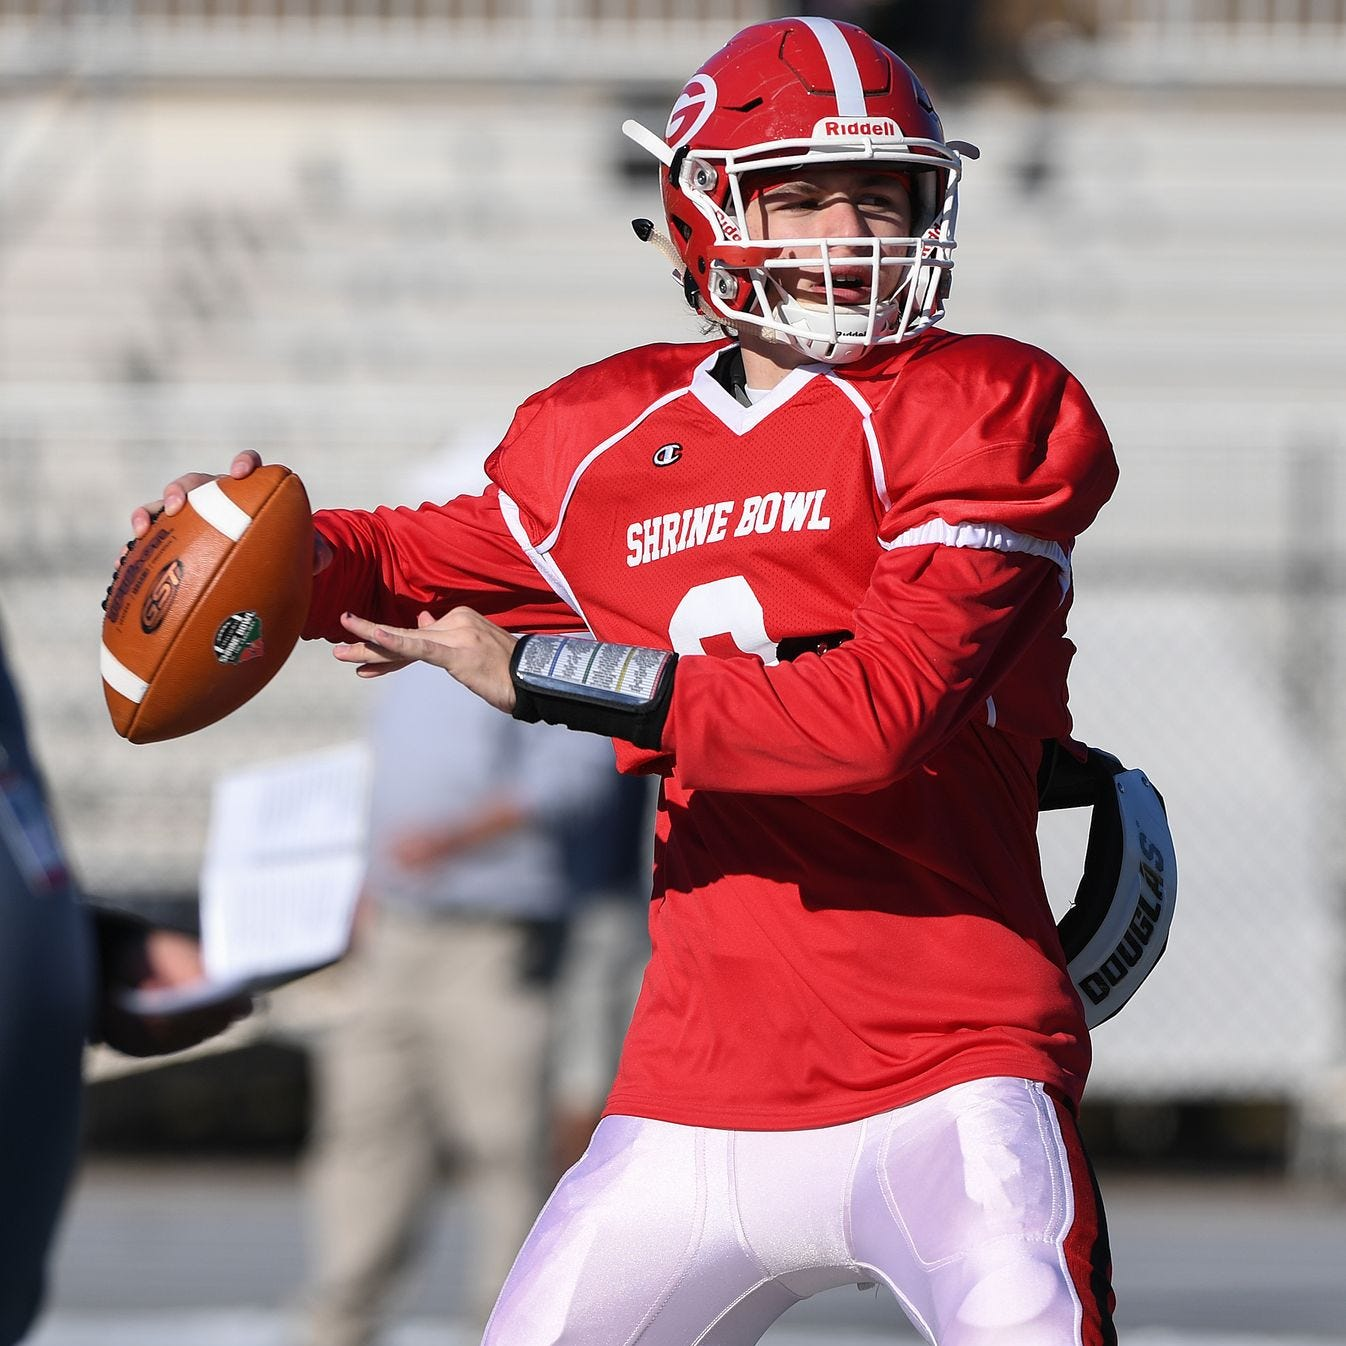 Greenville High quarterback Davis Beville has passed for 4,565 yards with 62 touchdowns over the past two seasons.